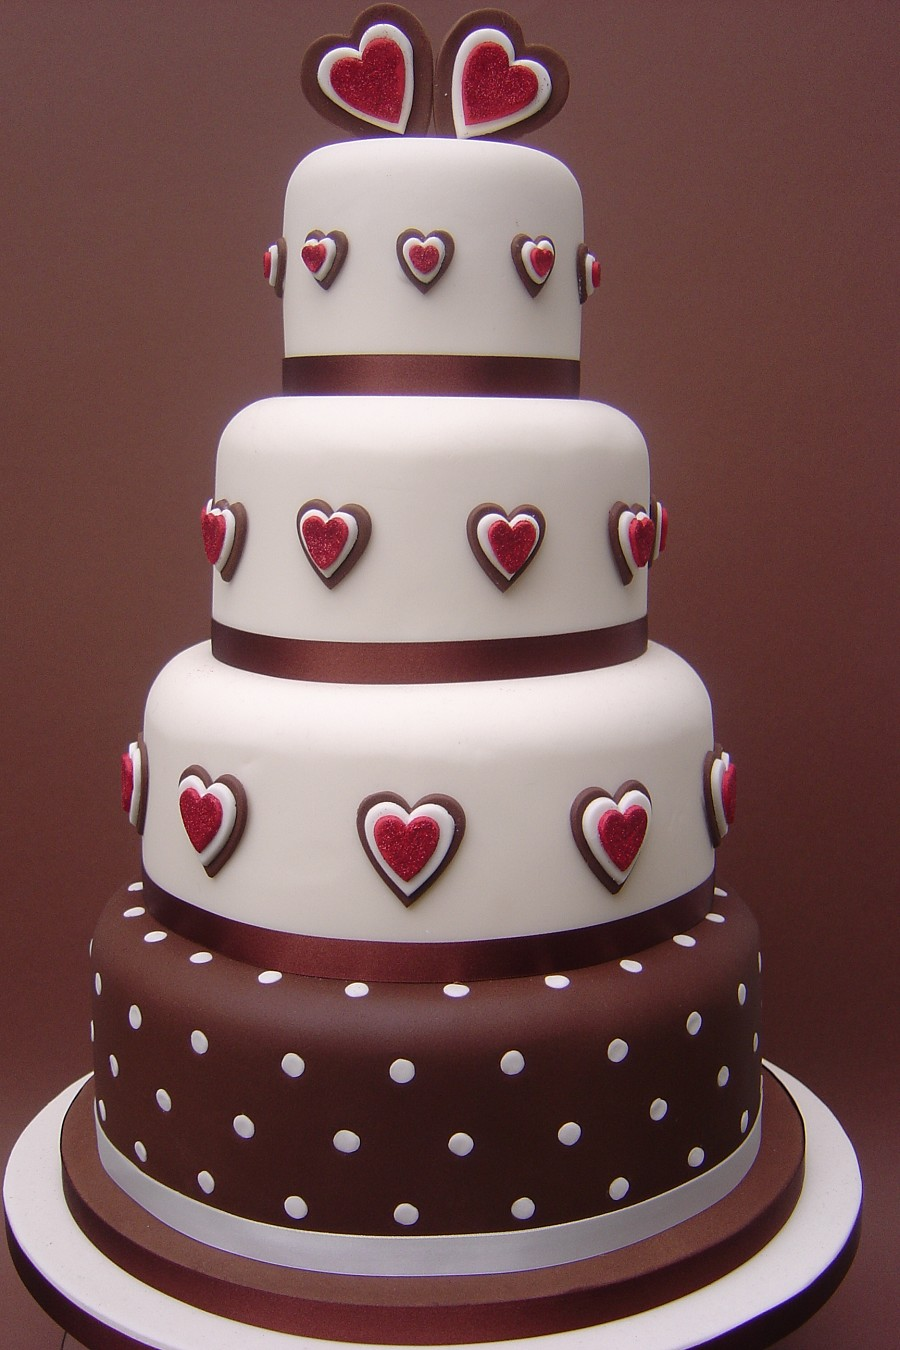 Cake Ideas For Small Wedding : Wedding cake Ideas collection